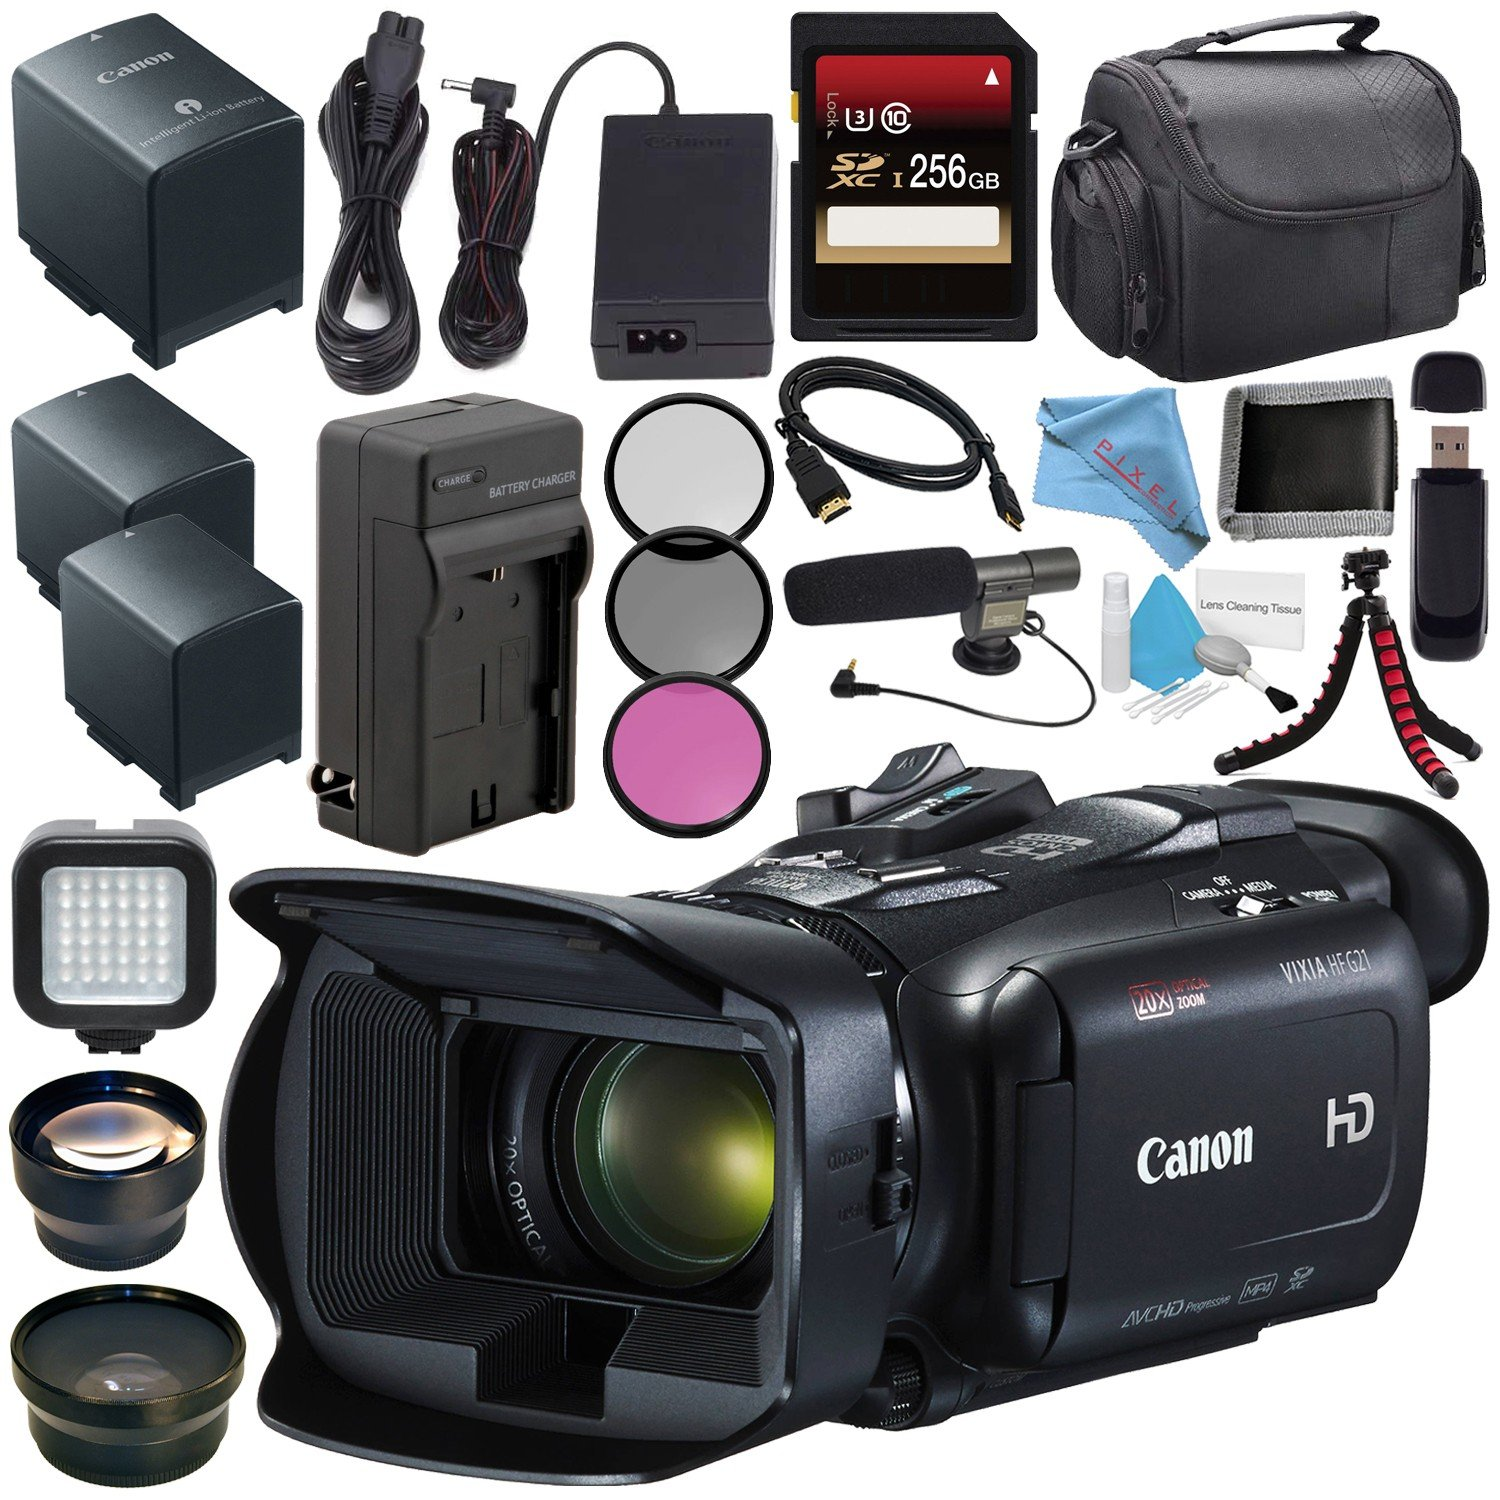 Canon VIXIA HF G21 HFG21 Full HD Camcorder 2404C002 + Lithium Ion Battery Pack + External Rapid Charger + 256GB SDXC Card + 58mm Wide Angle Lens + 58mm 2X Telephoto Lens + Card Reader Bundle